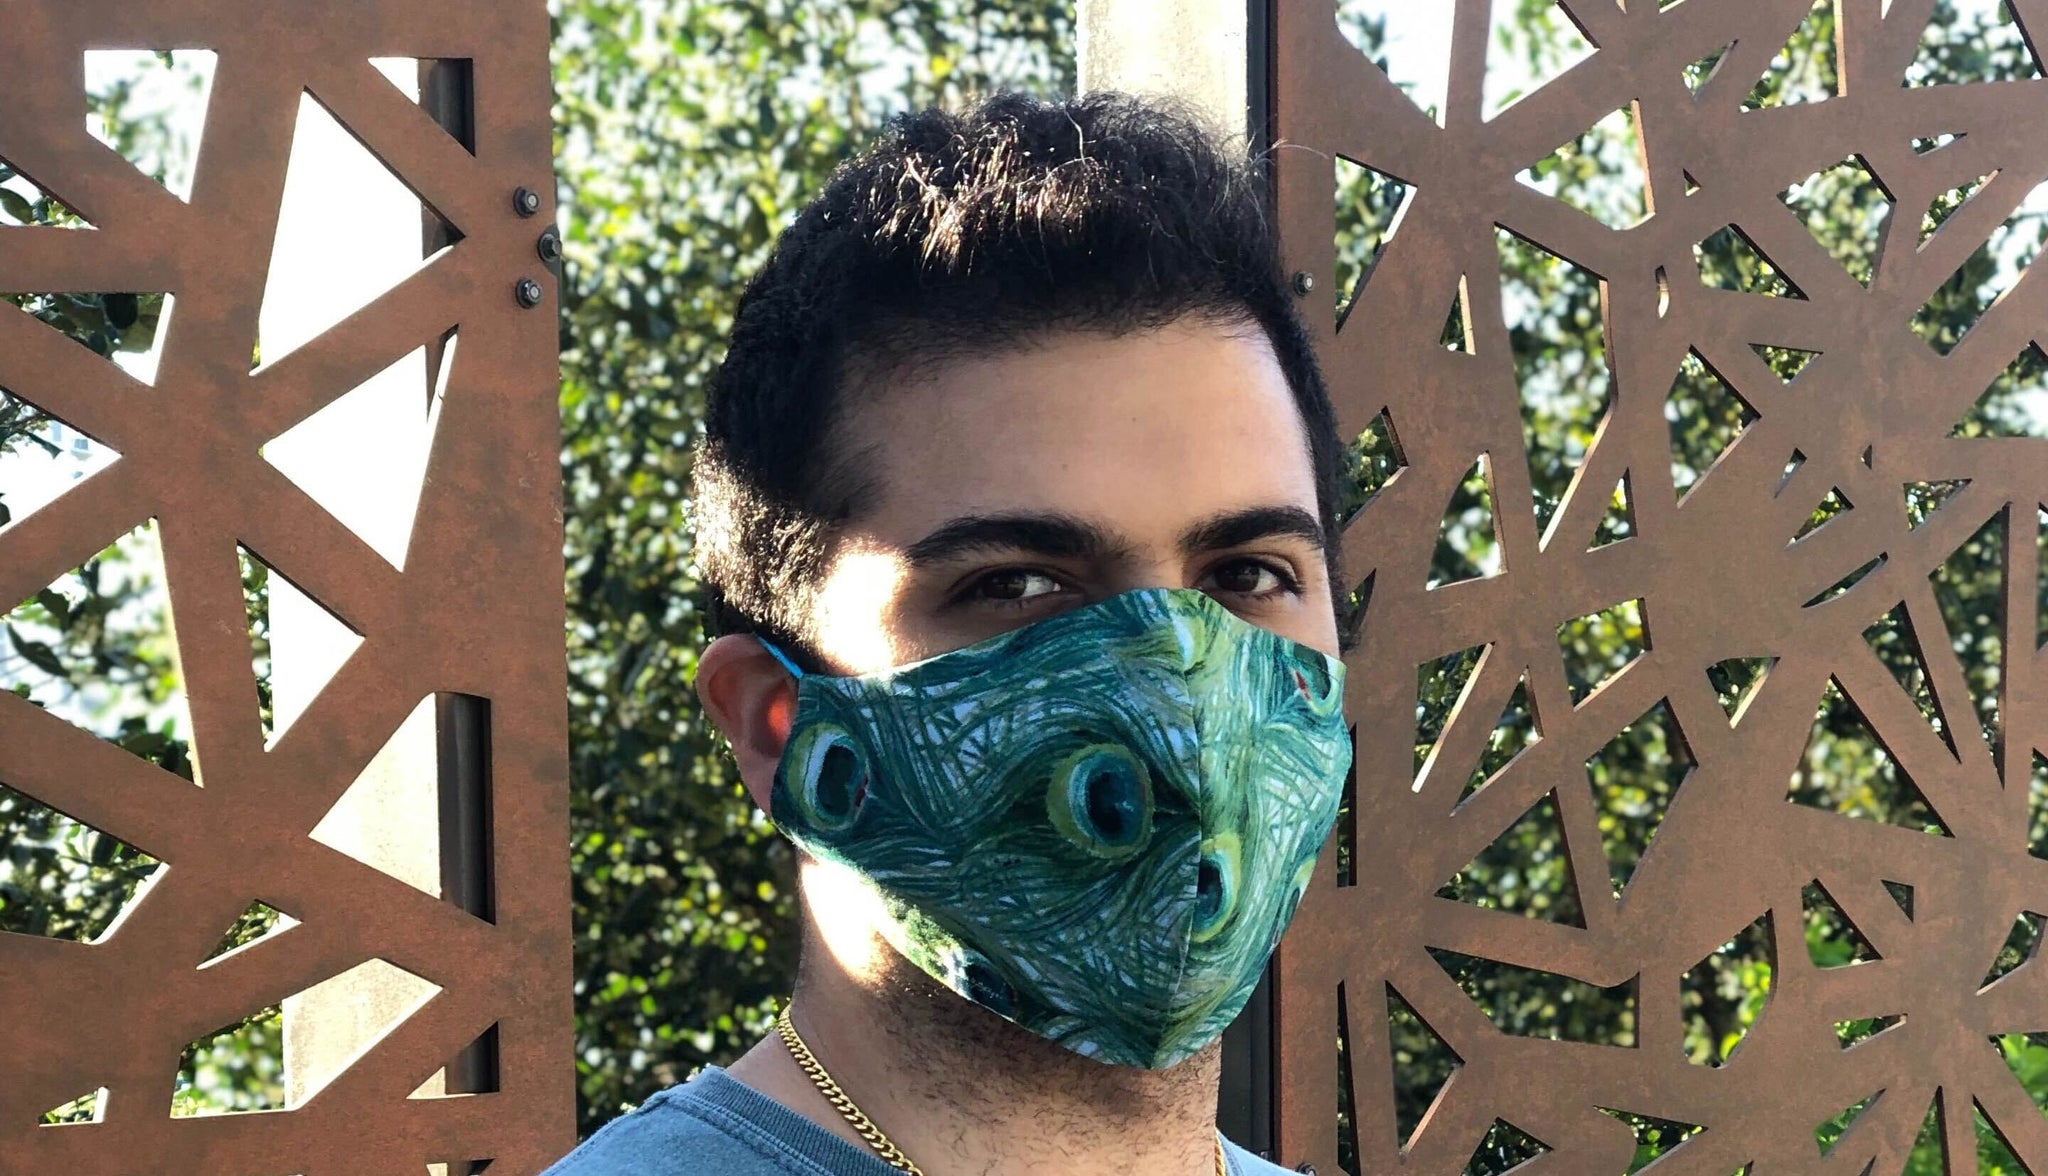 Peacock face masks model photo